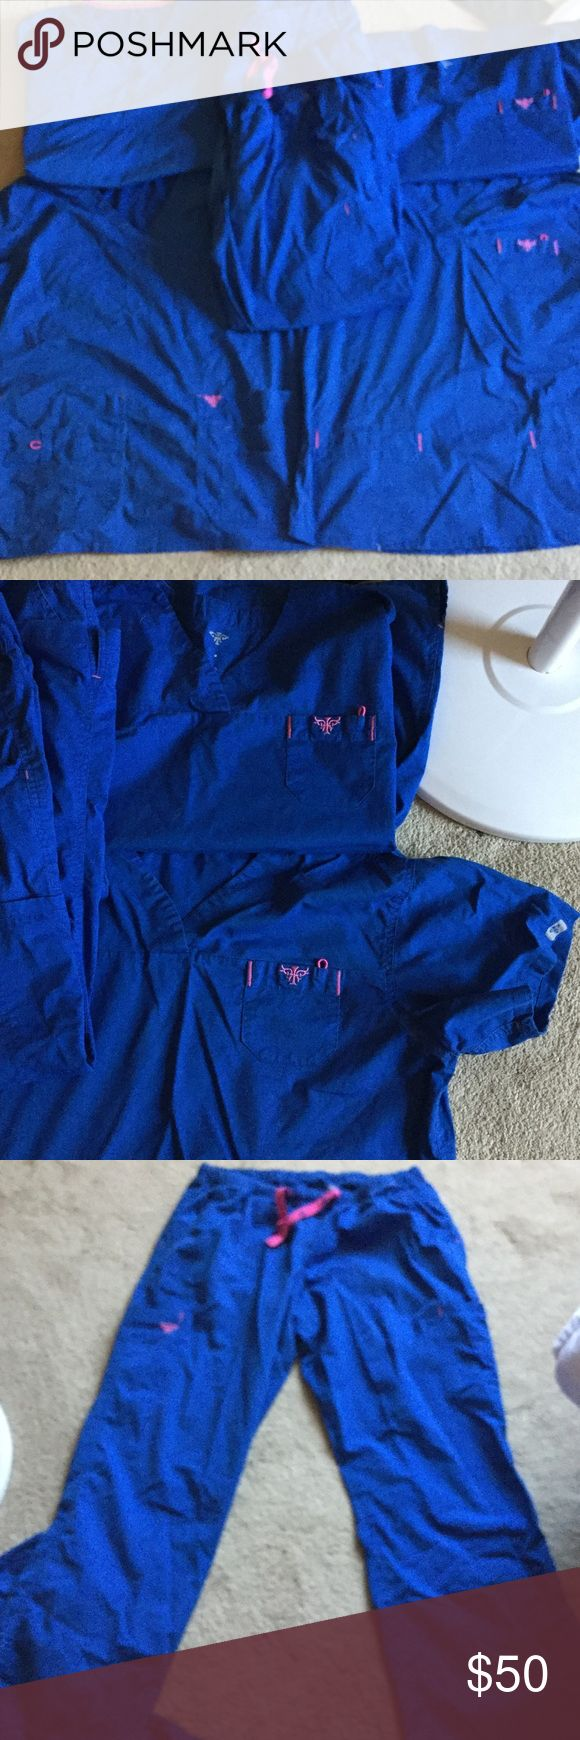 6 piece set of Scrubs royal blue Set comes with 4 tops 2 pants all match both sets of tops are the same.  All med couture brand very well made. Selling very cheap to clean out closet I have a lots of scrubs. Sorry there wrinkled they were in a tote in closet. med couture Other